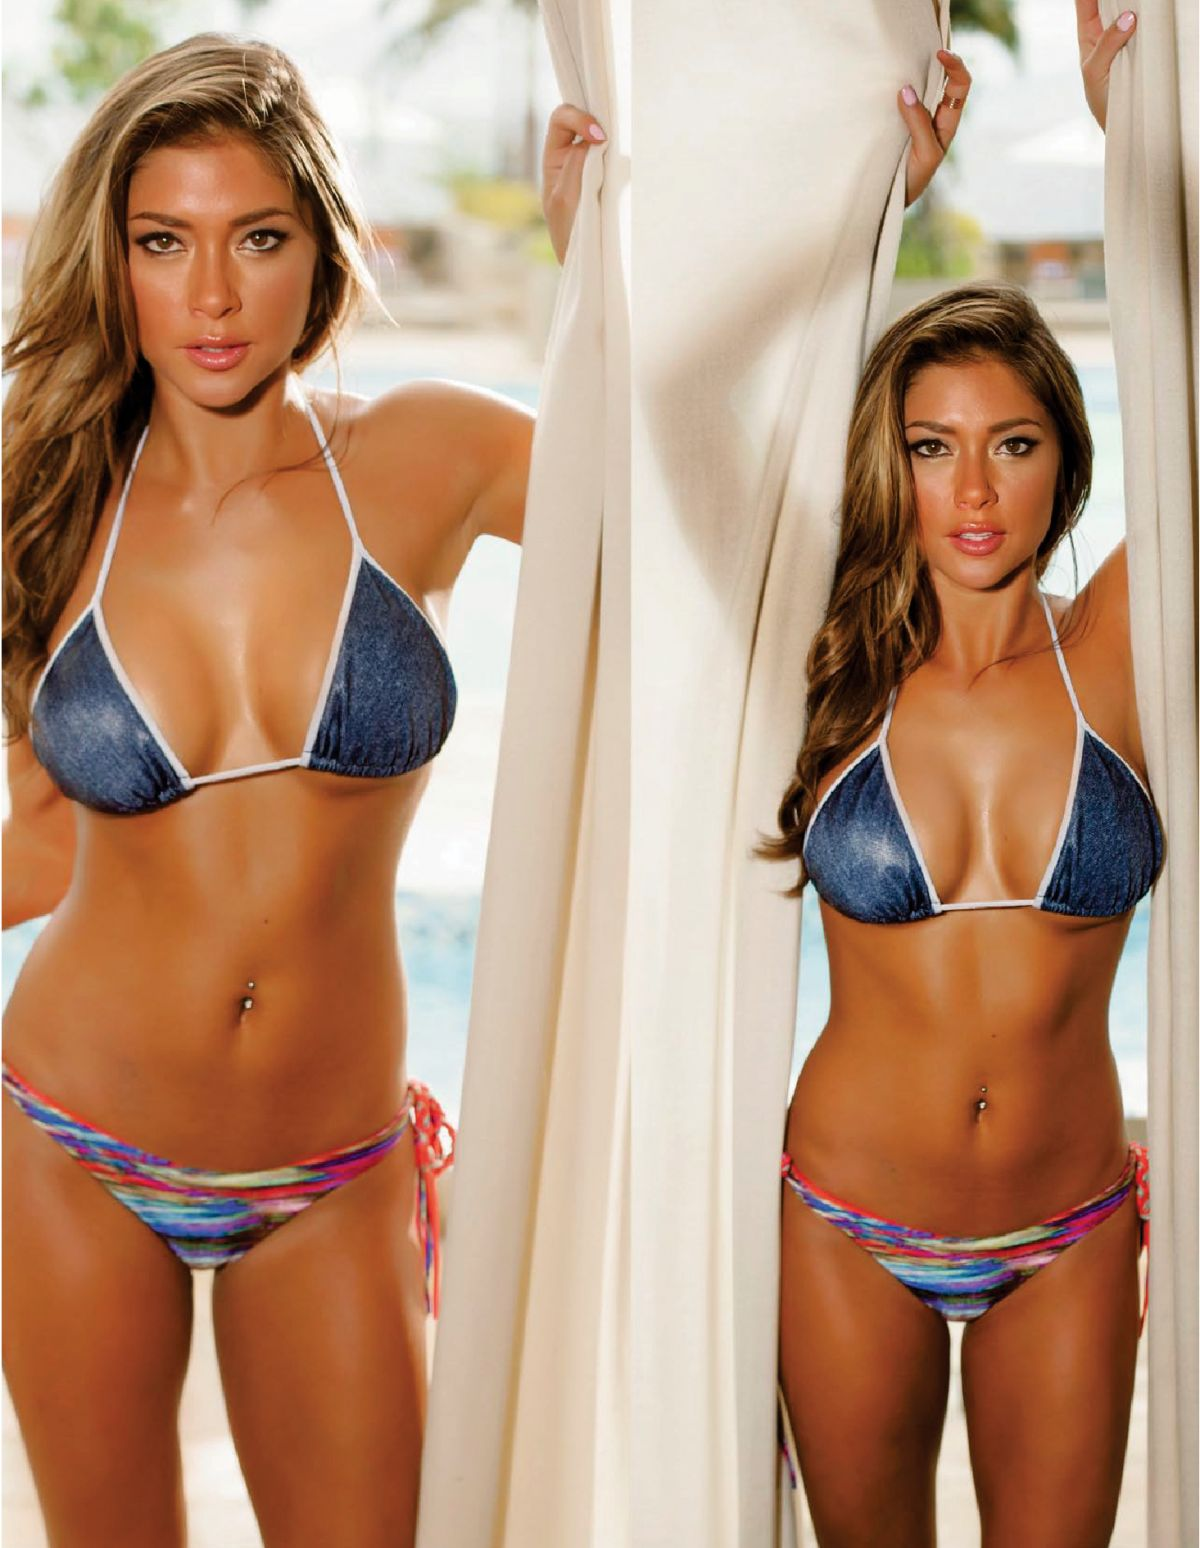 Philippines Models Gallery Arianny Celeste In Fhm Magazine  August 2015 Pictures -3924